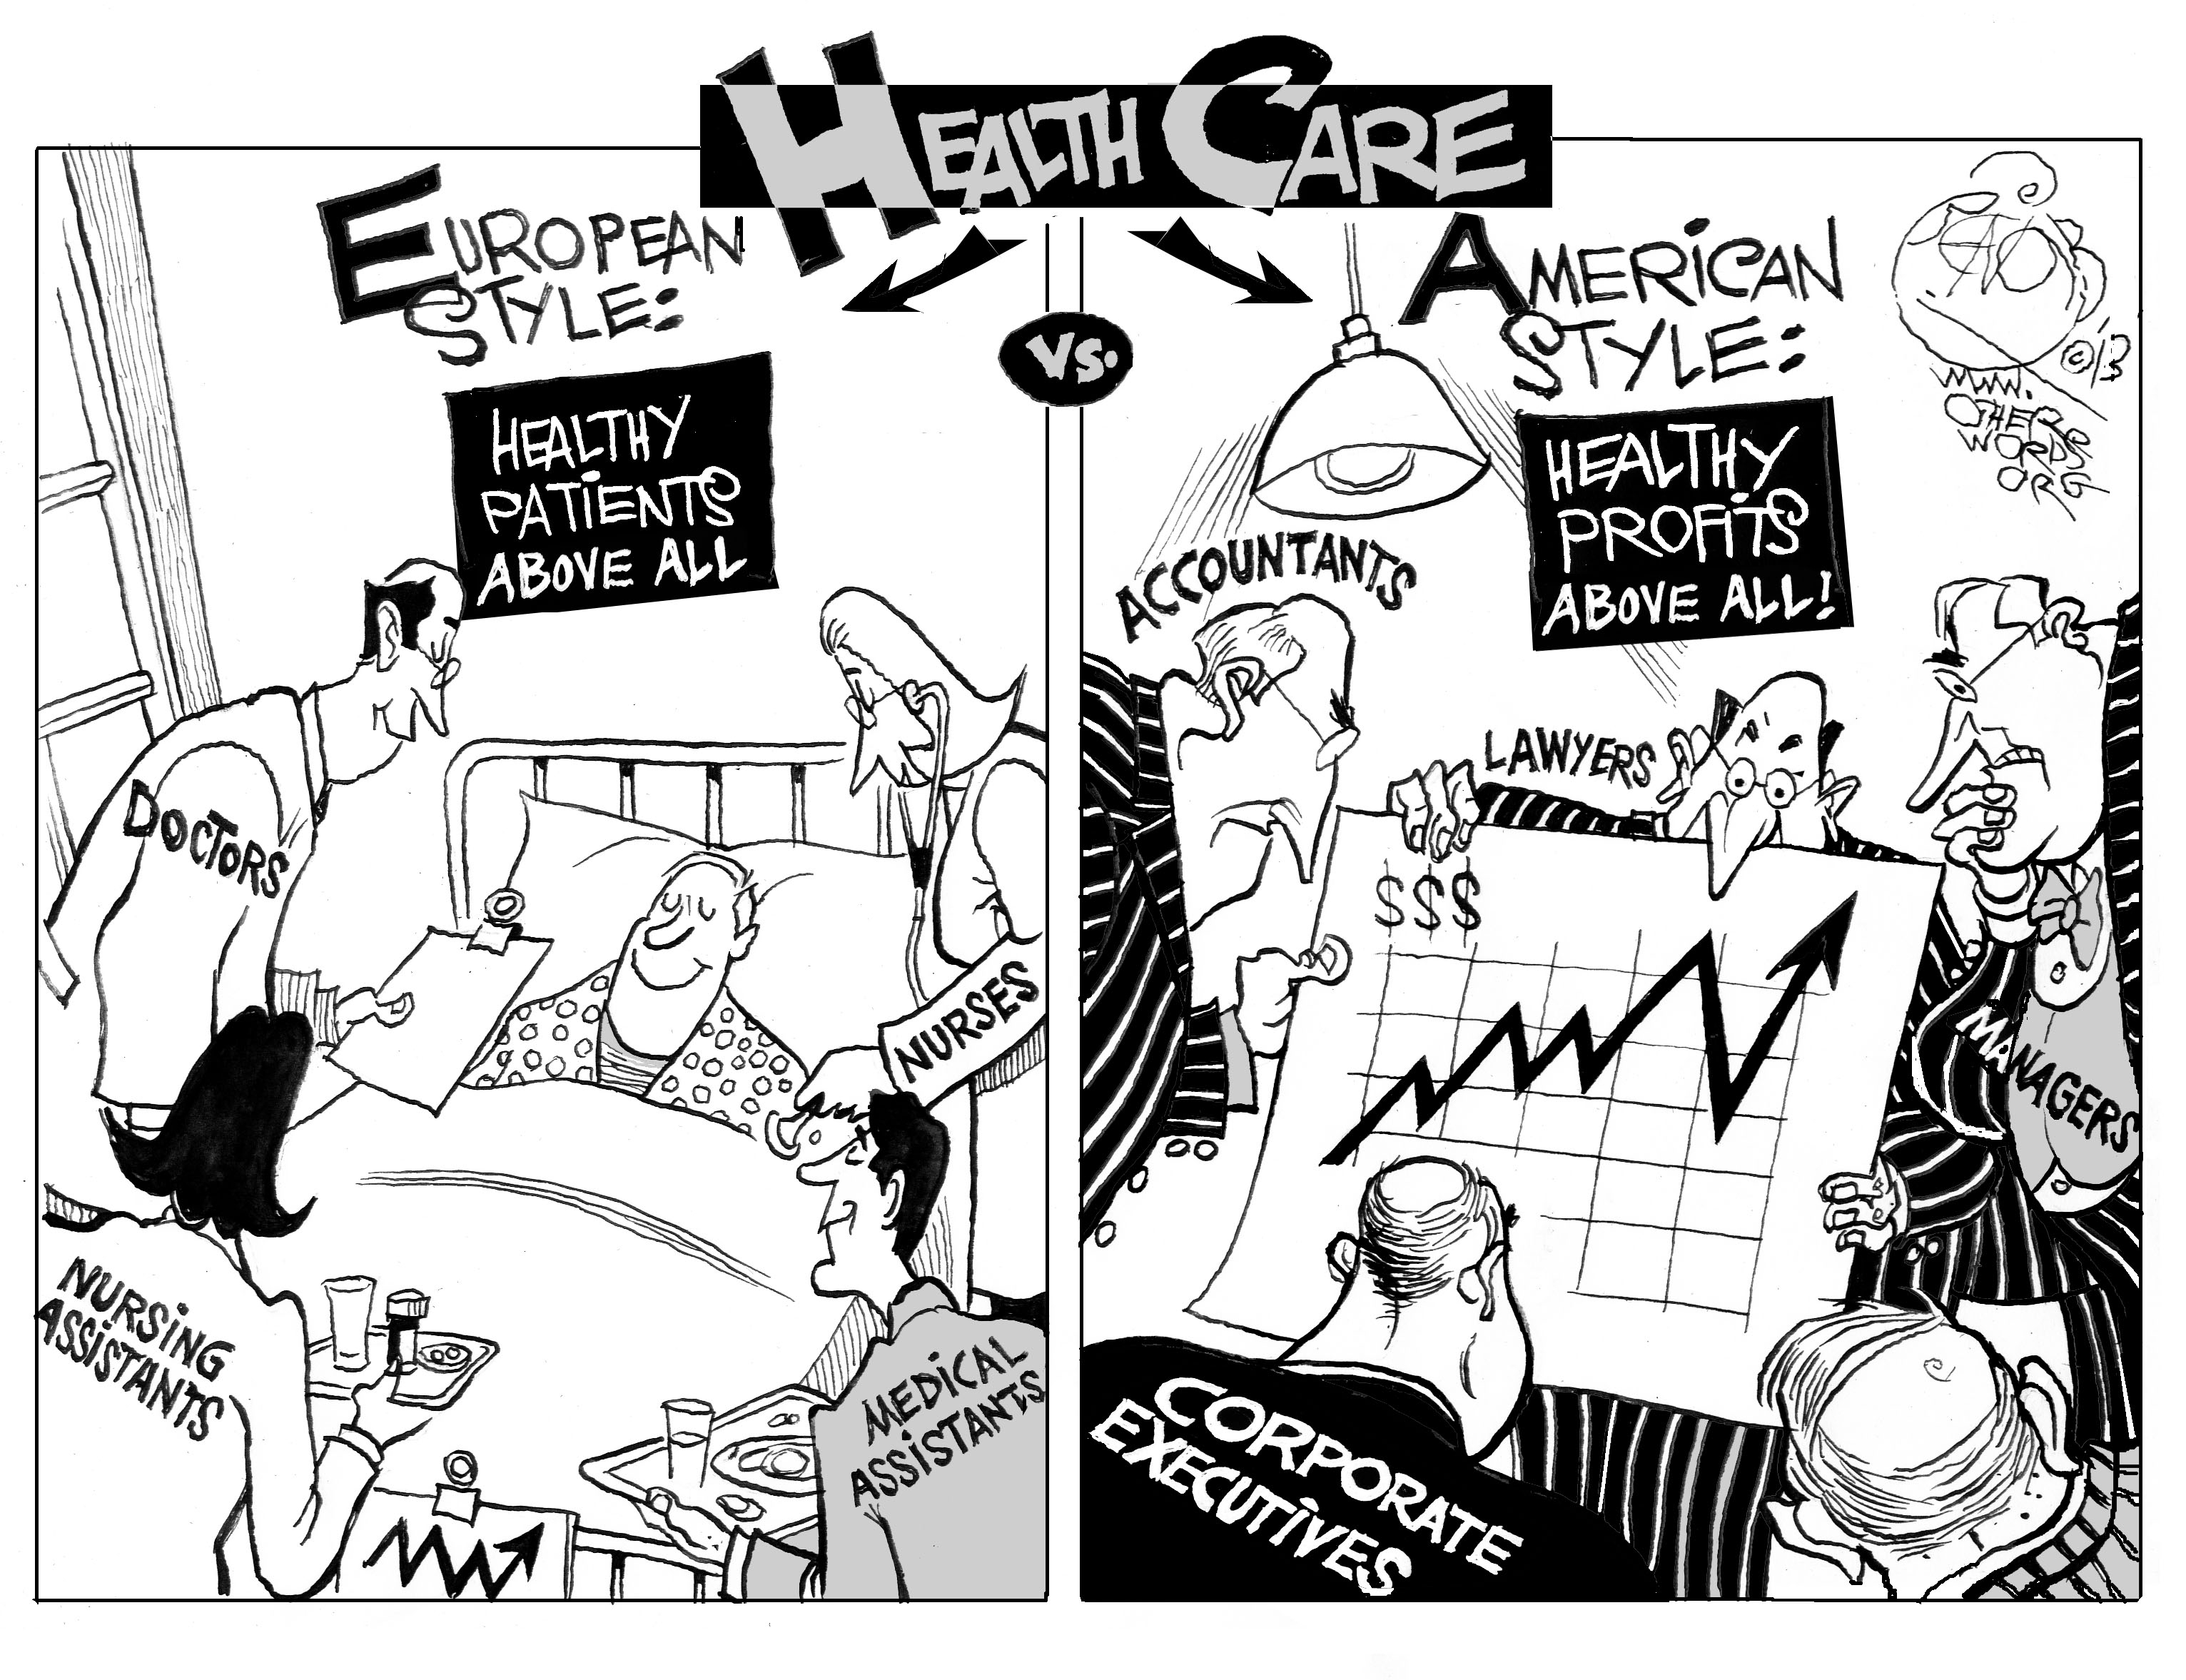 Patients vs Profits